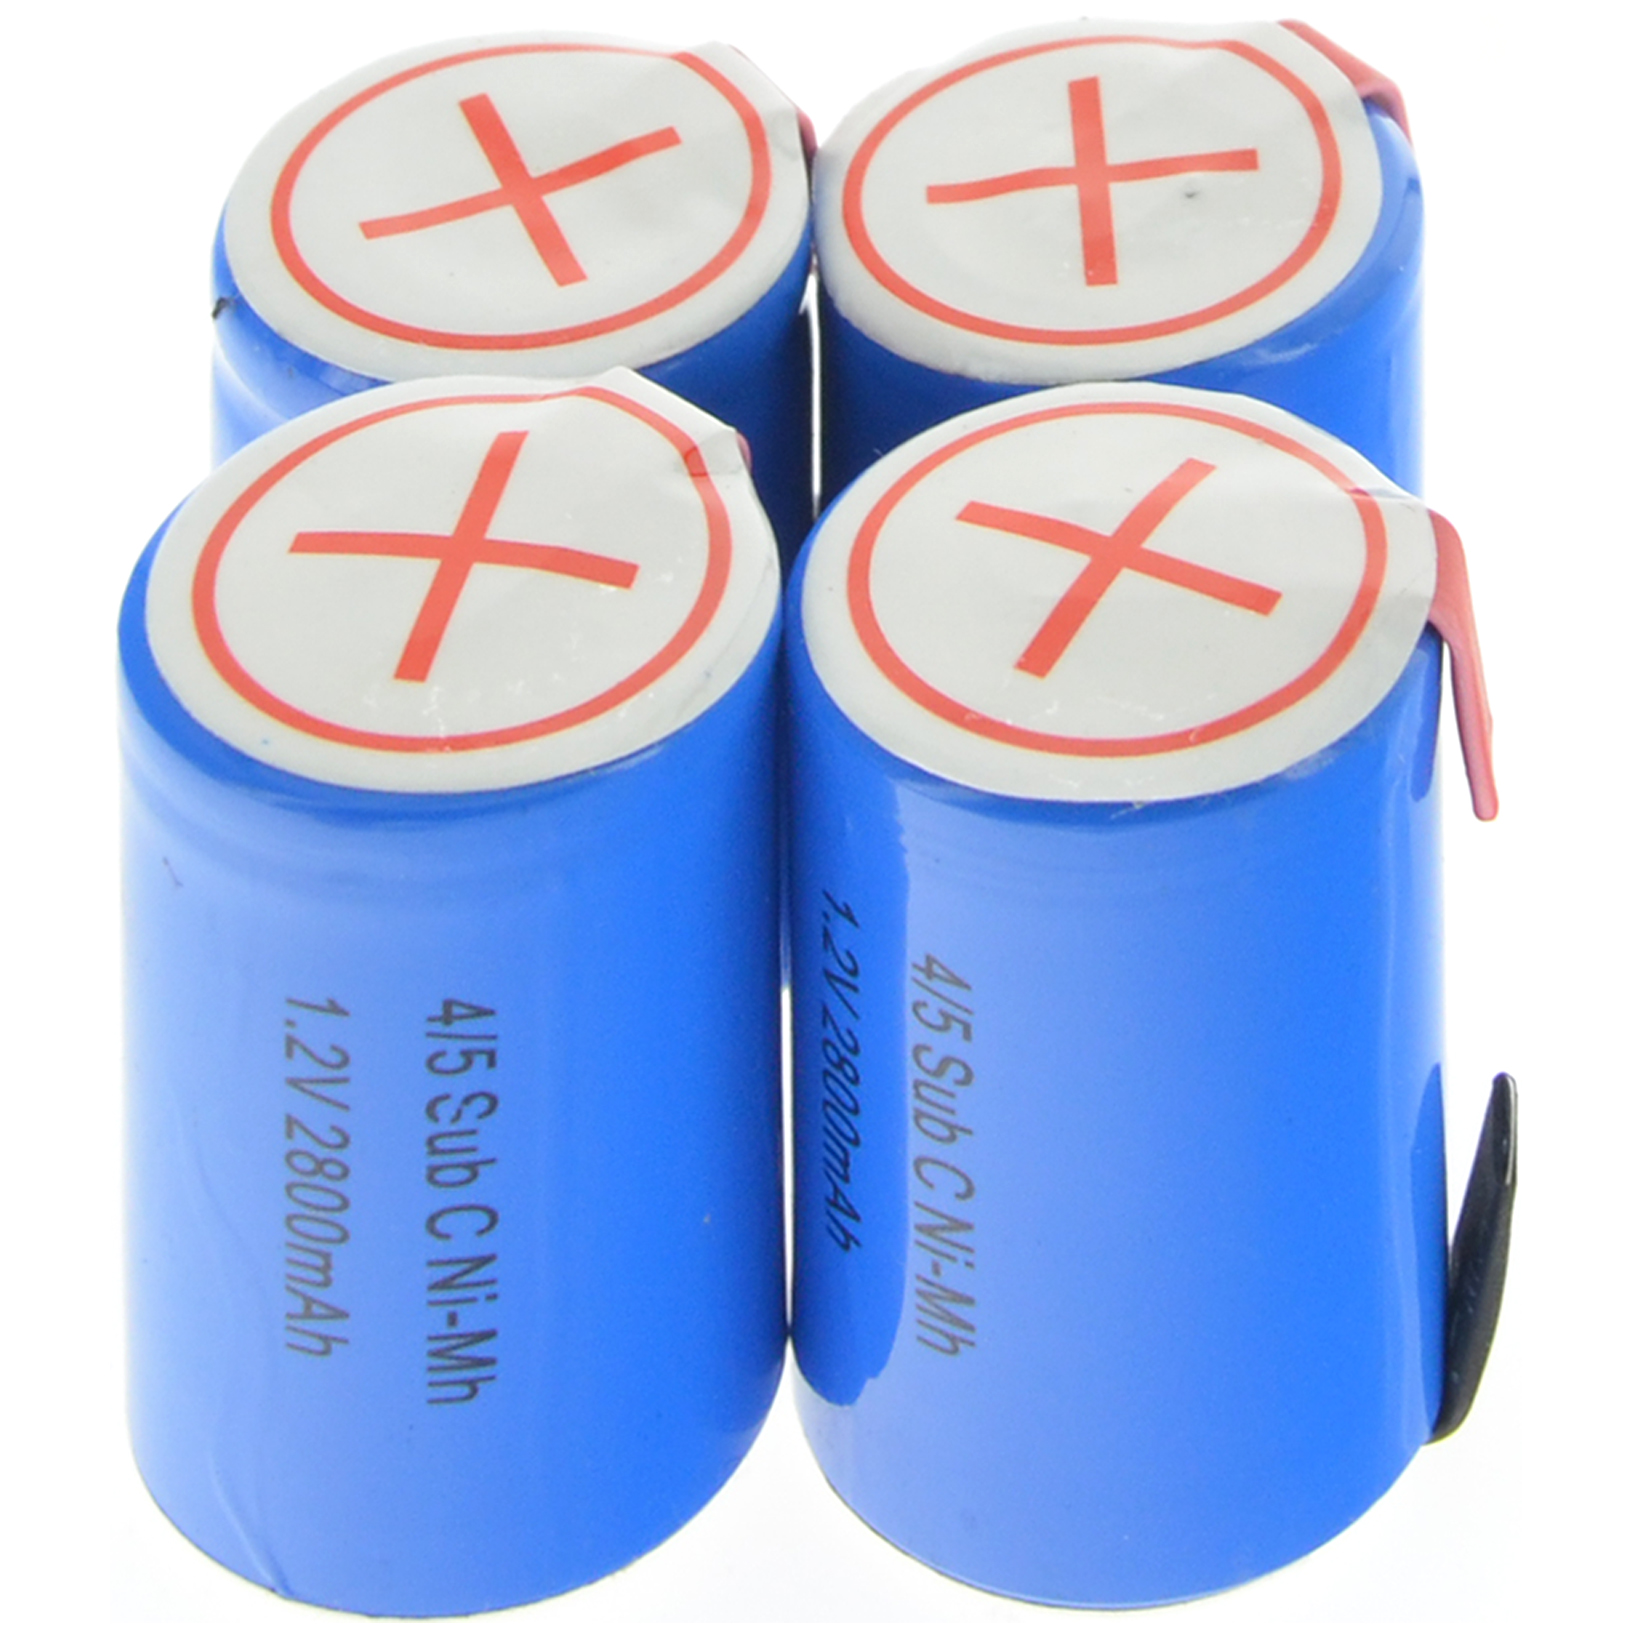 1/2/4/8/12pcs 4/5 SubC Sub C 2800mAh 12pcs 1.2V Ni-Mh Rechargeable Battery Blue Cell with Tab outdoor fleece hat men women camping hiking caps warm windproof autumn winter caps fishing cycling hunting military tactical cap